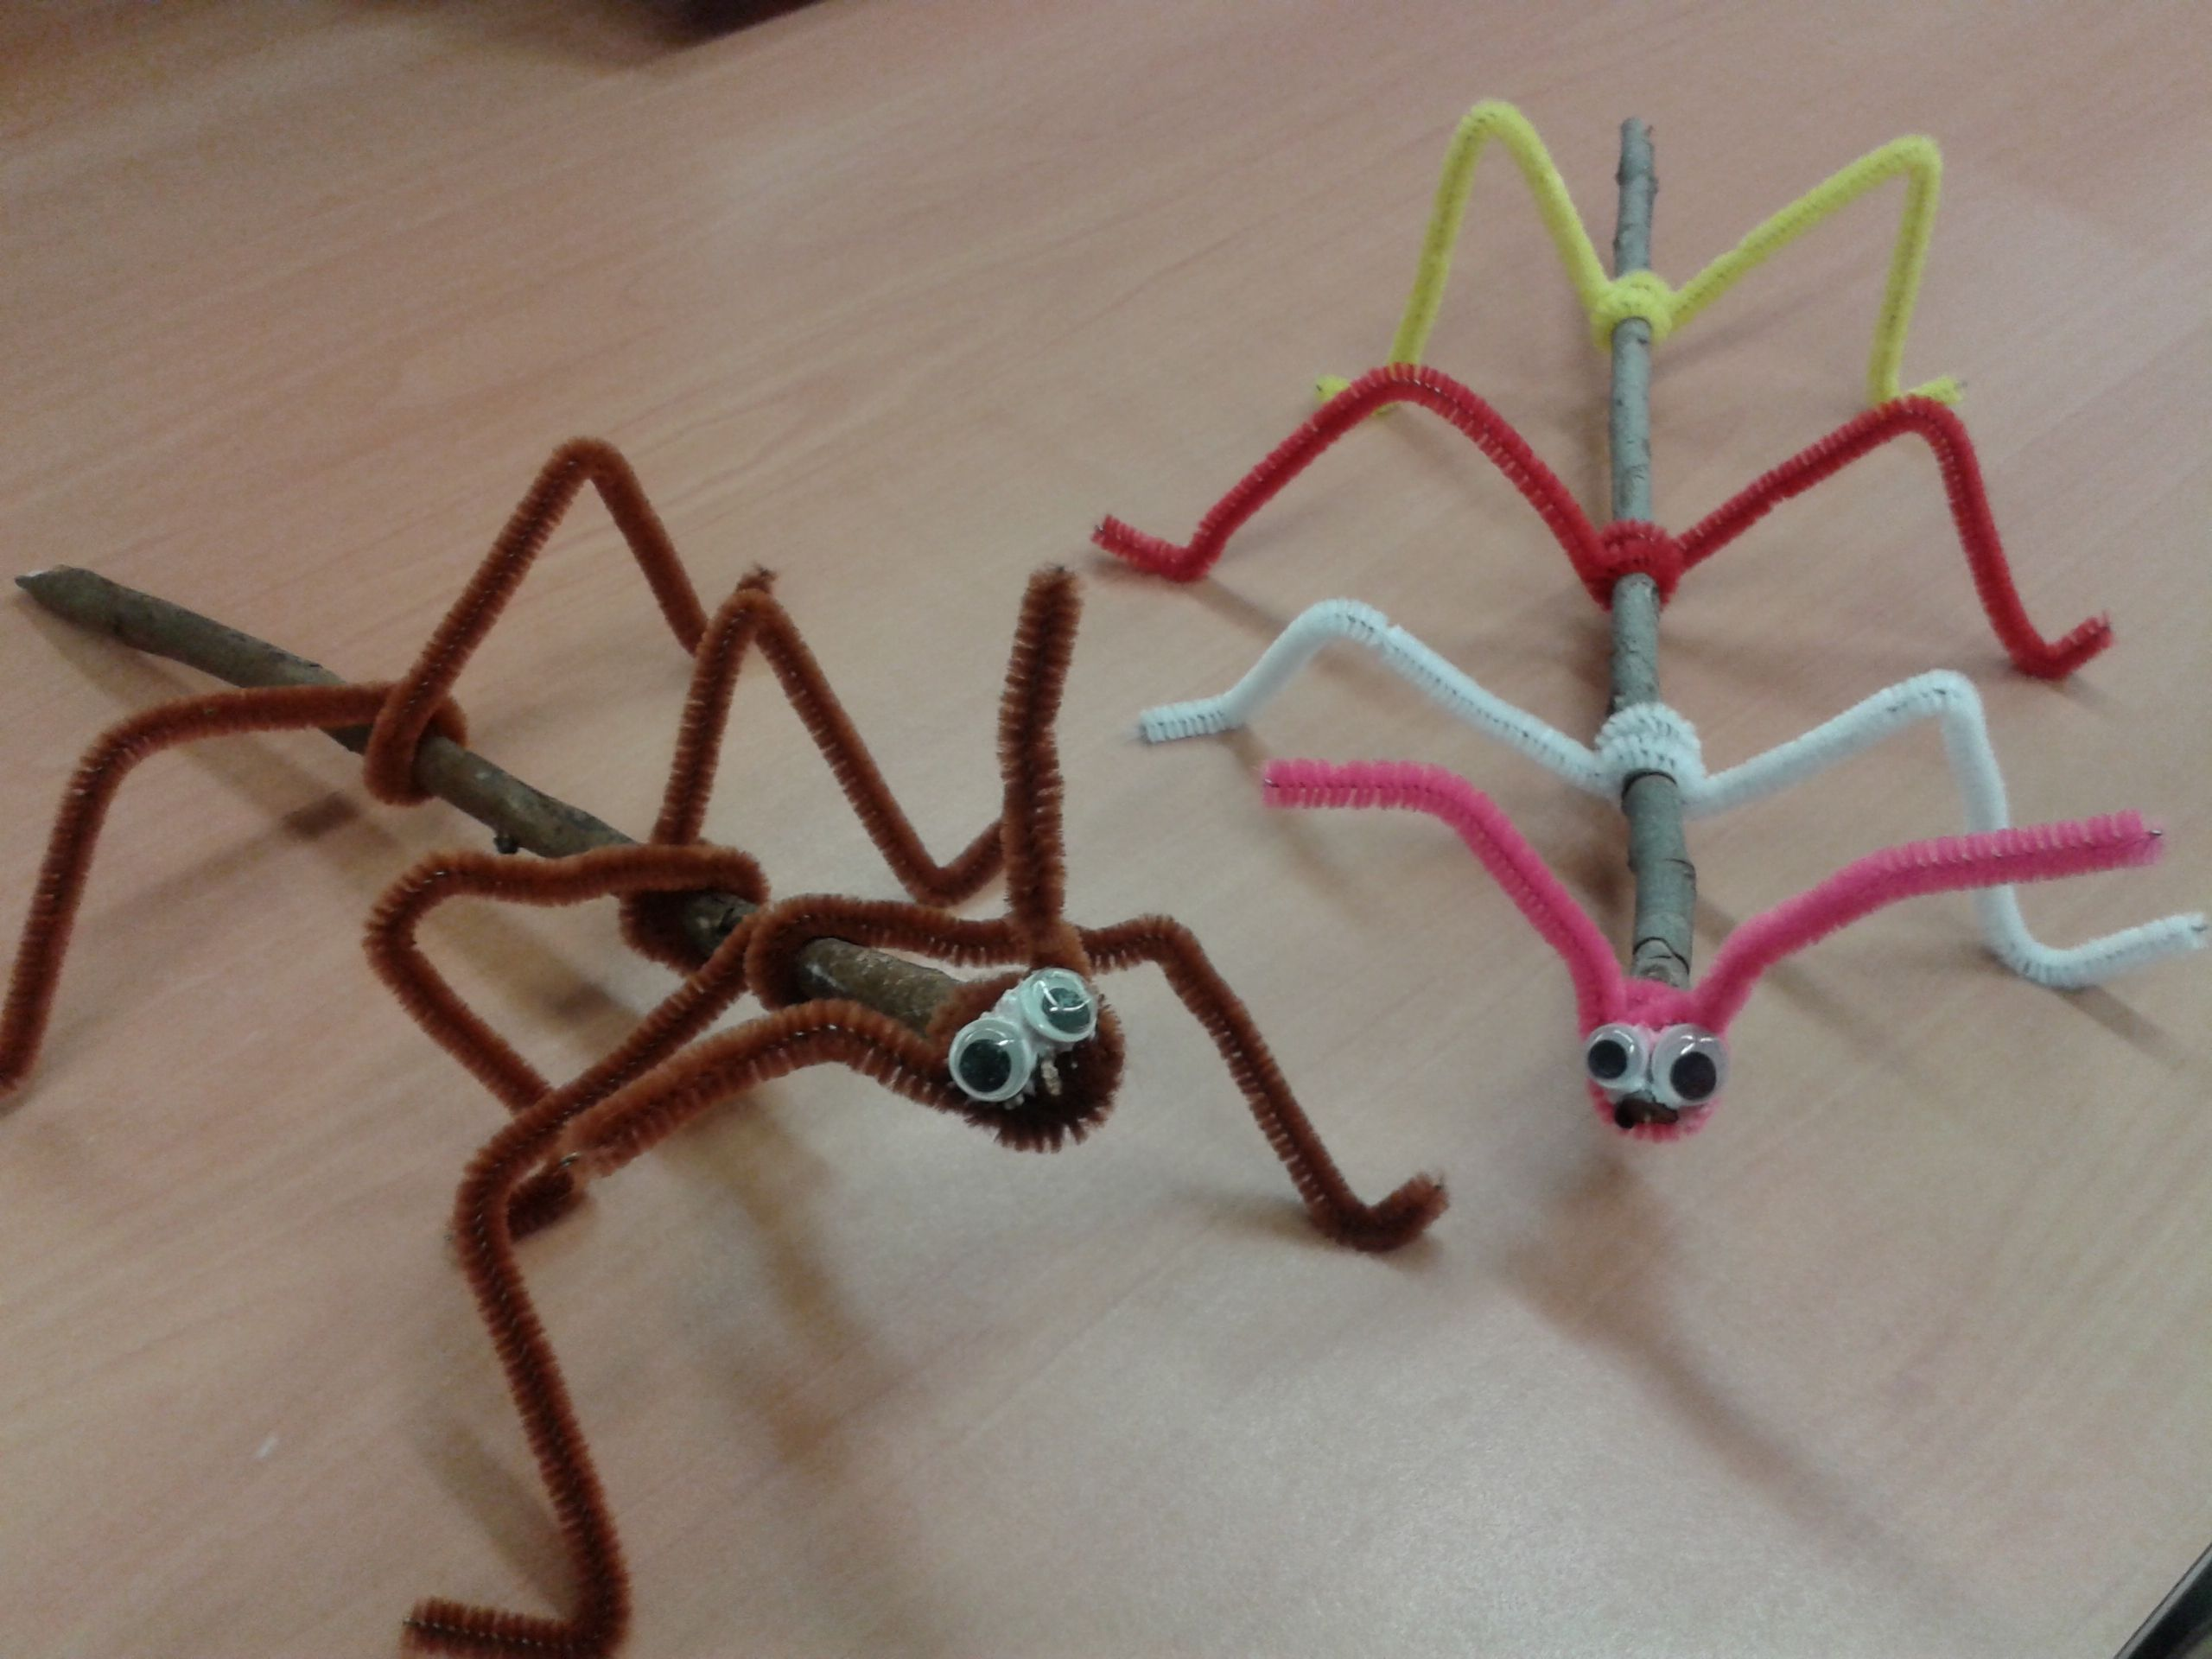 Make Stick Insect Science Craft